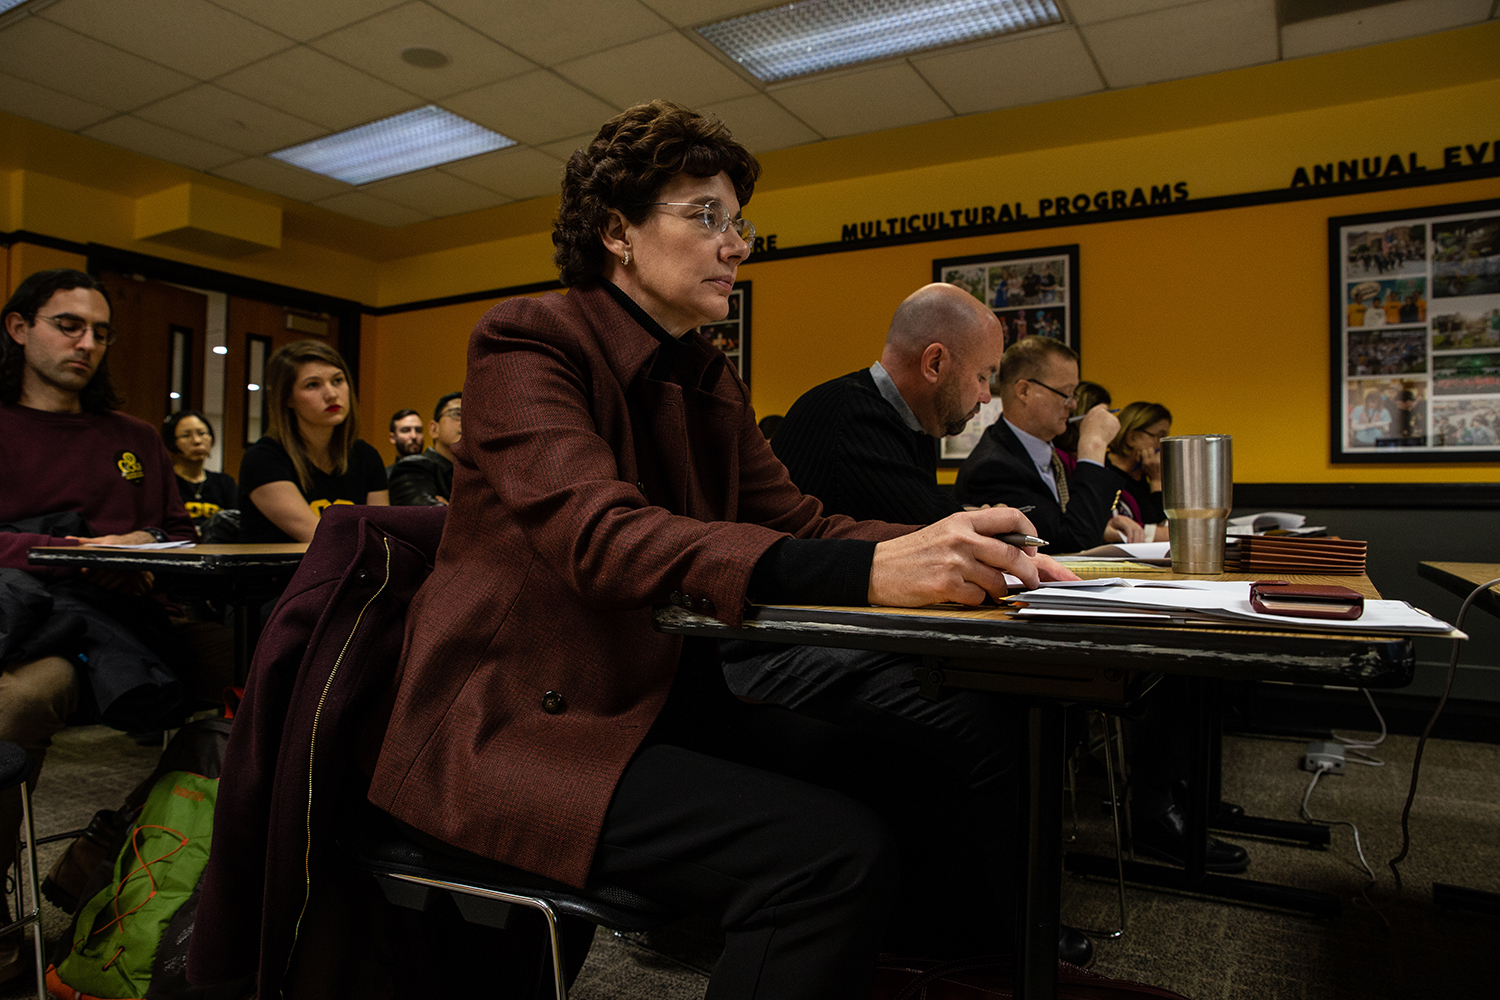 The Iowa Board of Regents Bargaining Committee hears proposals during the COGS policy proposal meeting on Wednesday, Nov. 28, 2018. The COGS policy proposal aims to solidify salaries, hours of work, benefits, and other terms and conditions for graduate students.